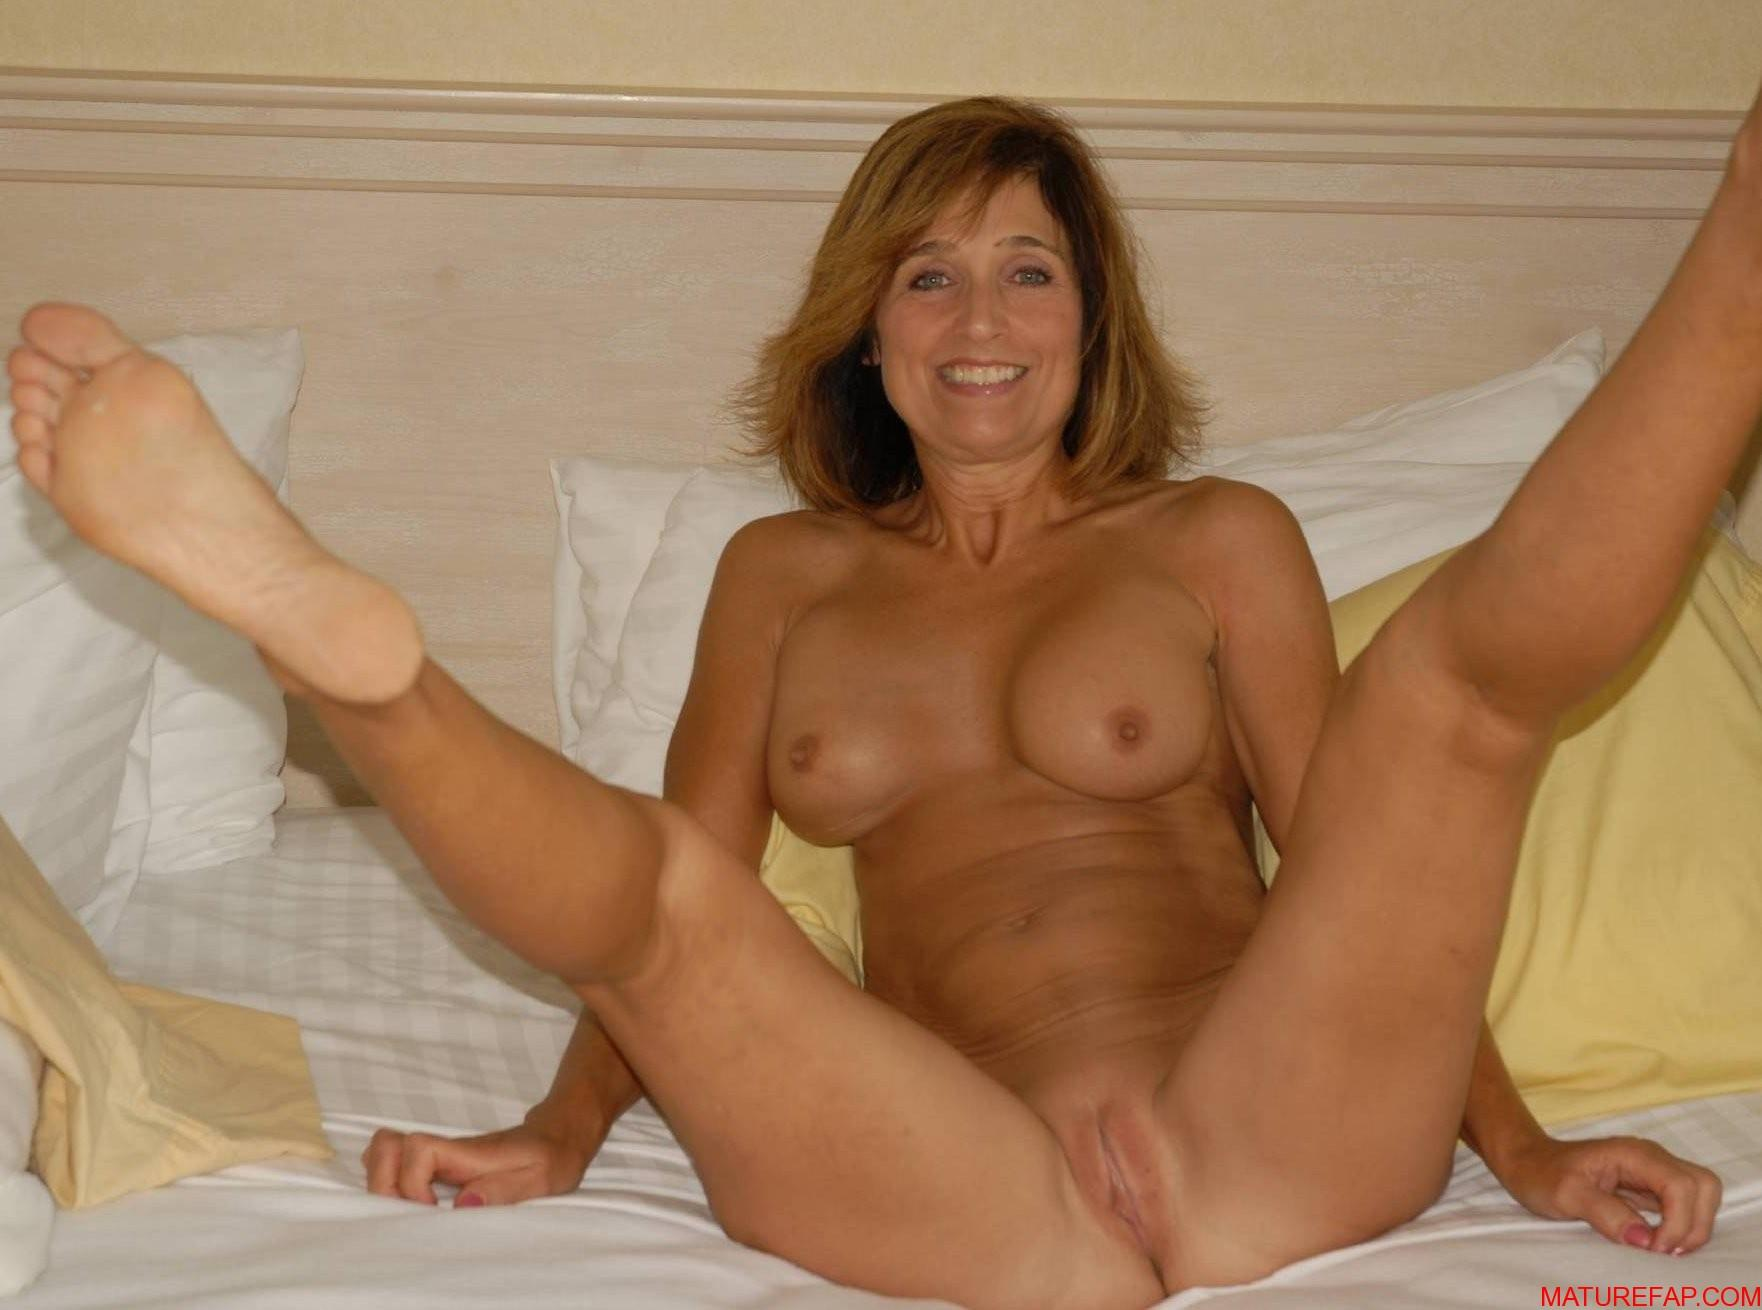 Fantastic ... Mature cock and pussy galleries